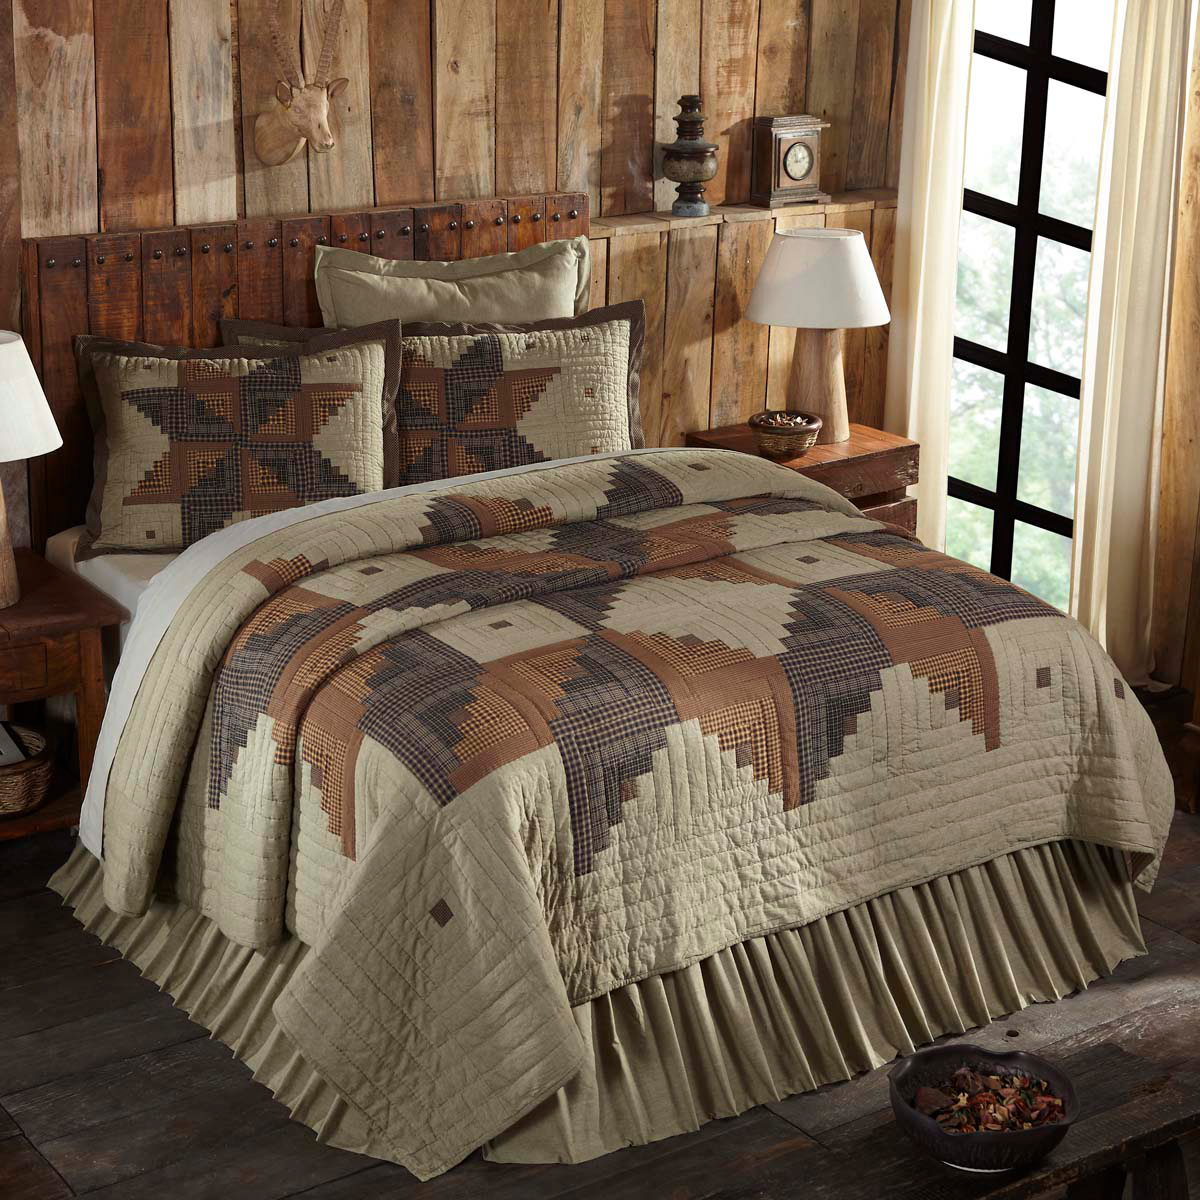 5-pc Novac Queen Quilt Set - Fabric Euro Shams & Hand-quilted Standard Shams VHC